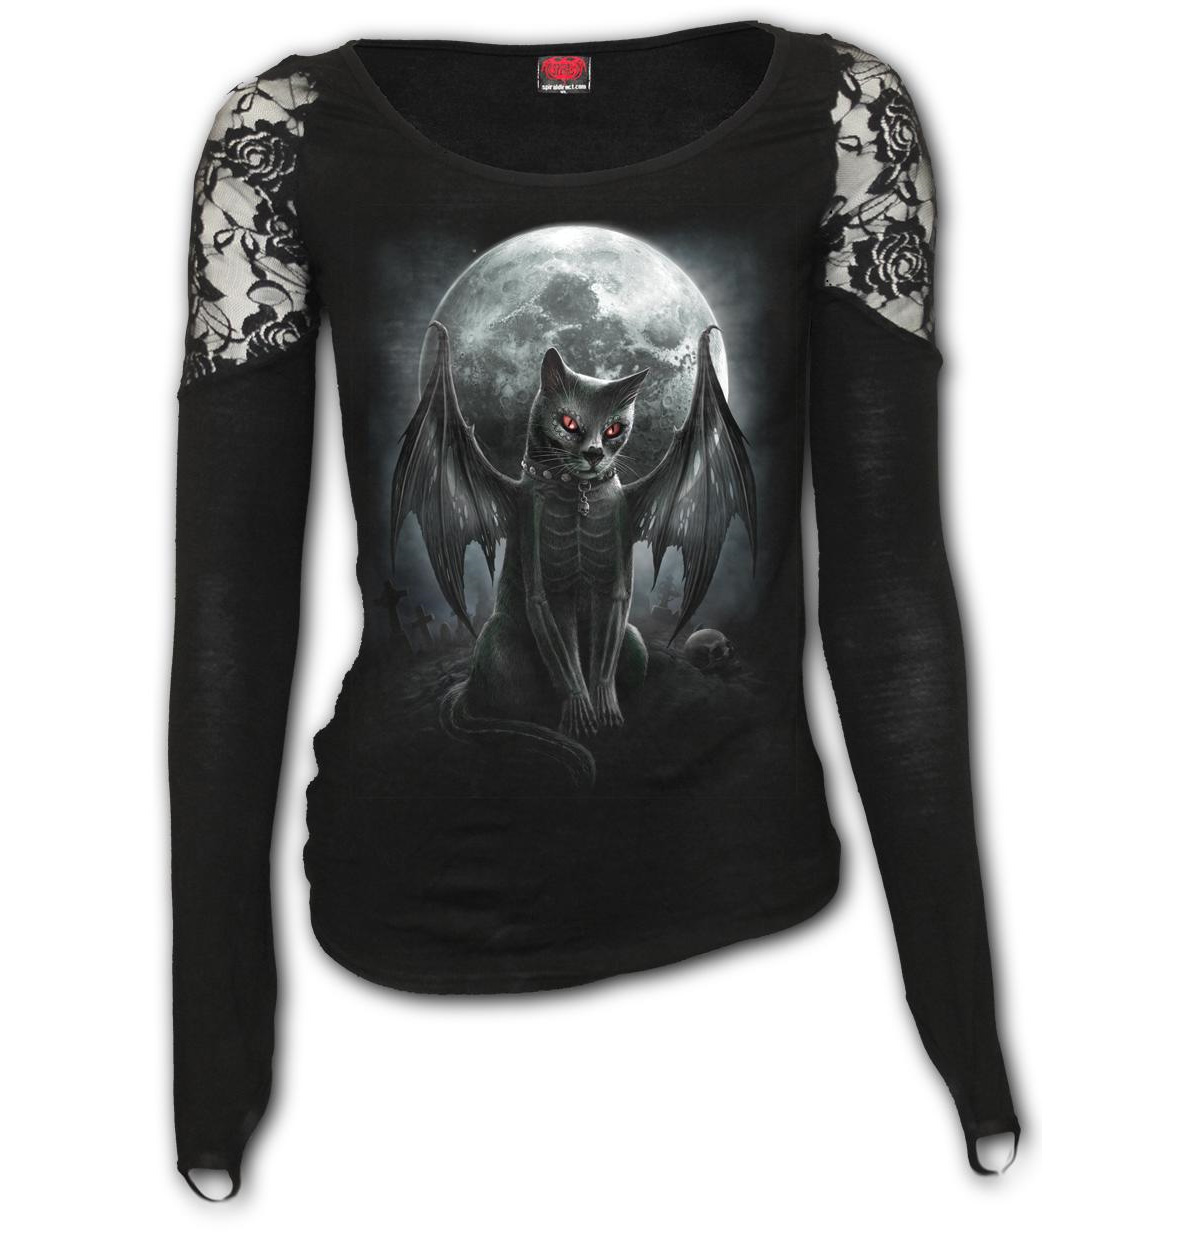 Spiral-Direct-Ladies-Gothic-Black-Top-Vampire-VAMP-CAT-L-Sleeve-Lace-All-Sizes thumbnail 5